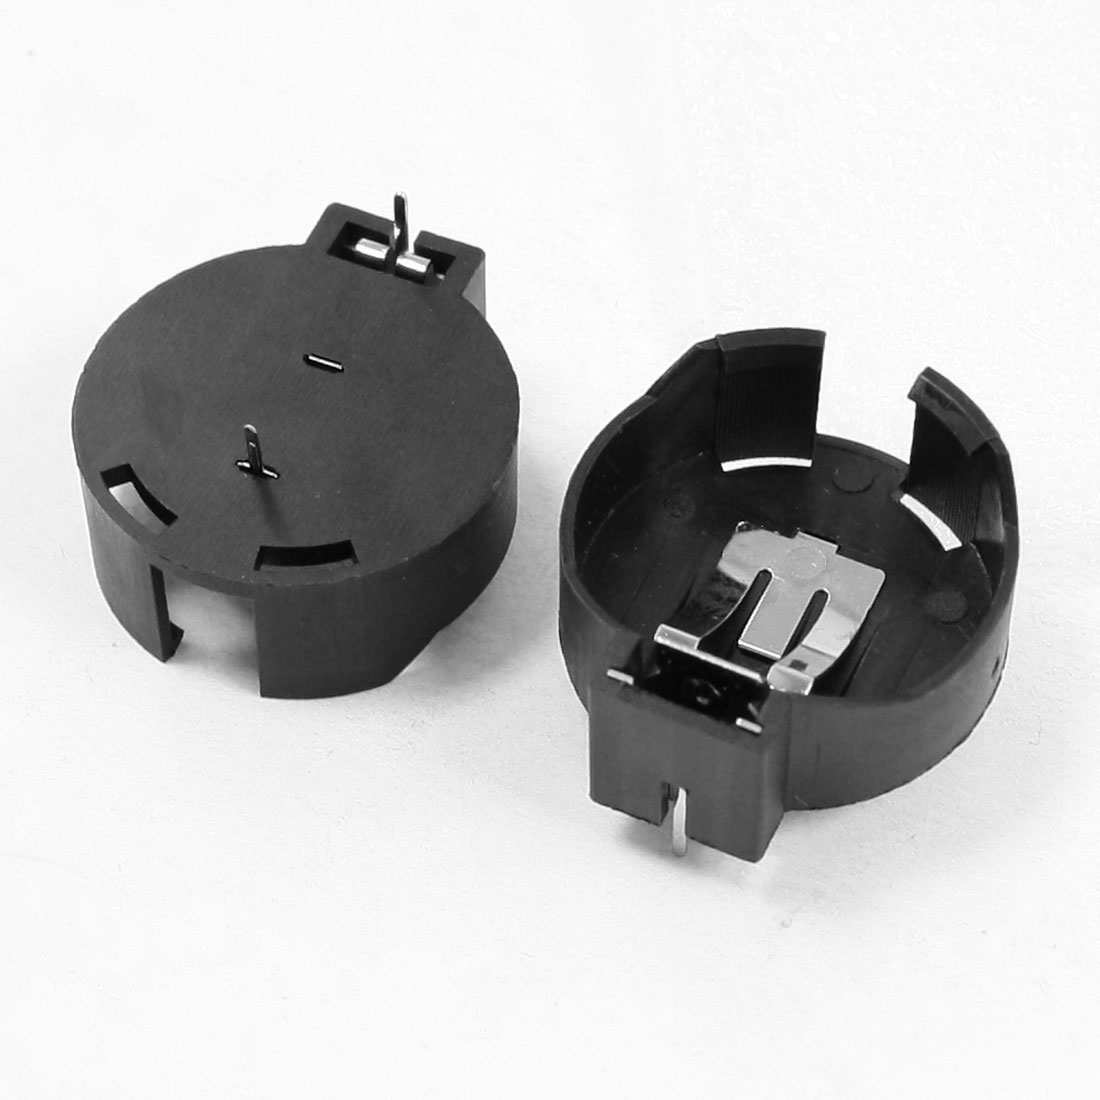 2 Pcs CR2477 Lithium Coin Cell Button Battery Holder Socket Black